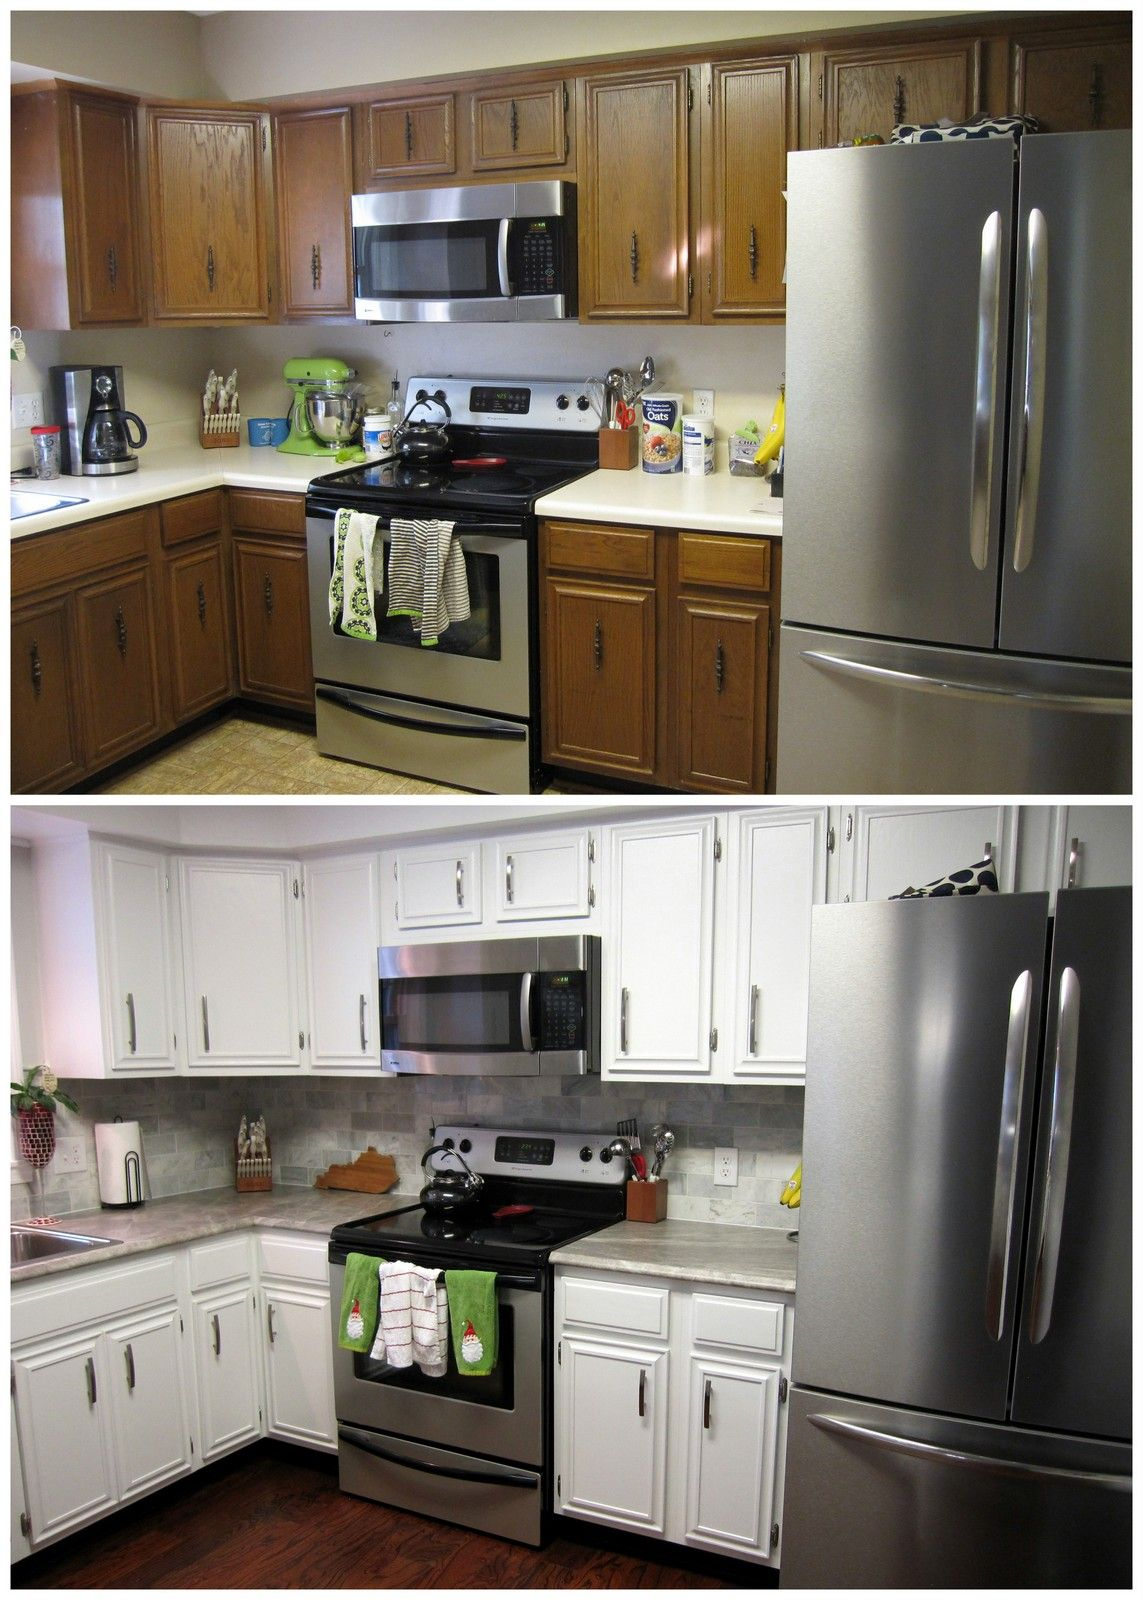 Scott and Allie painted kitchen cabinets review | DIY | Pinterest ...